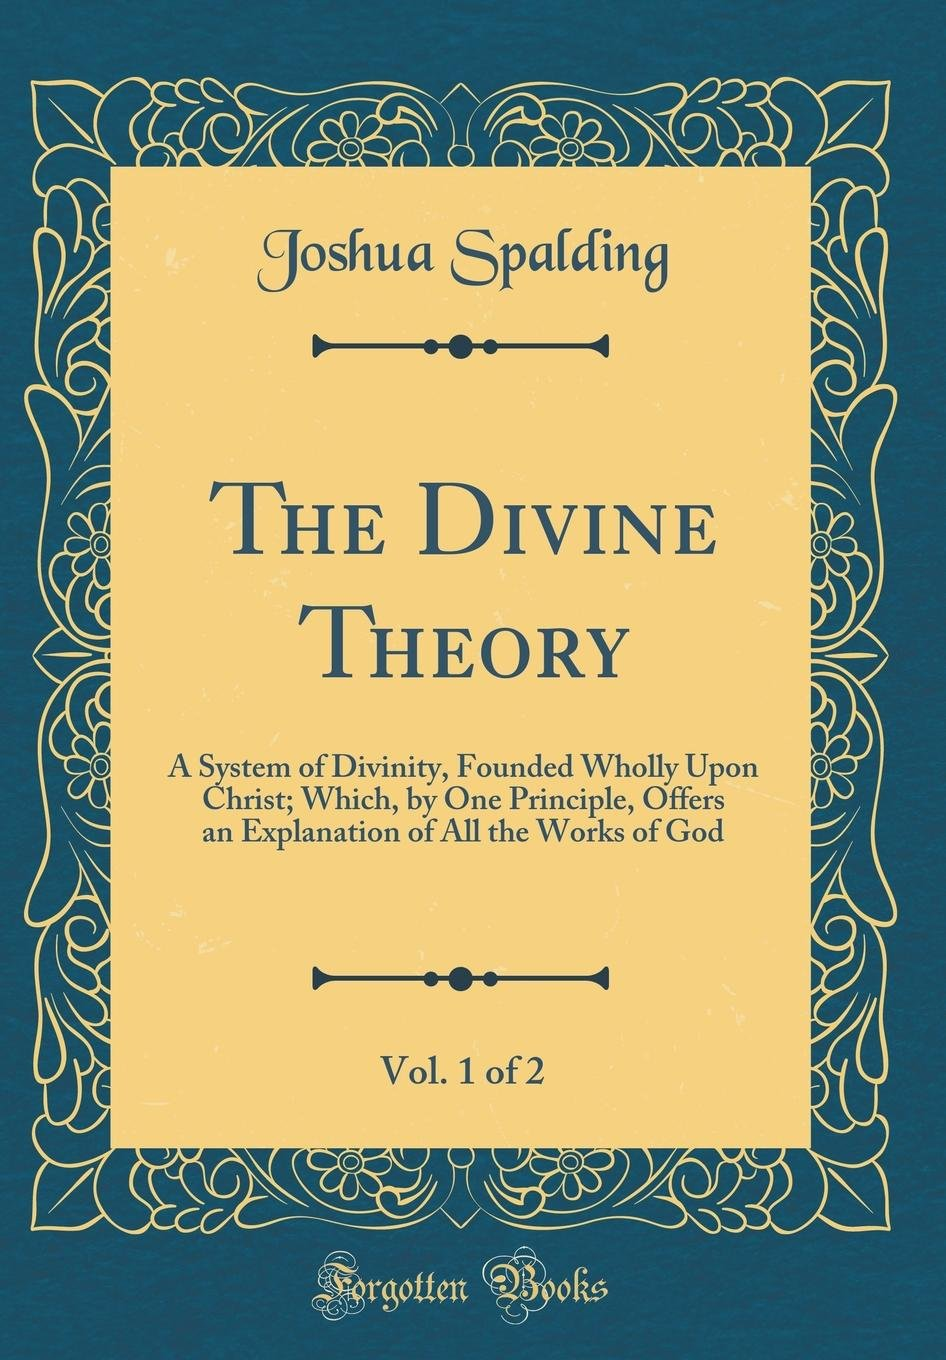 Read Online The Divine Theory, Vol. 1 of 2: A System of Divinity, Founded Wholly Upon Christ; Which, by One Principle, Offers an Explanation of All the Works of God (Classic Reprint) PDF